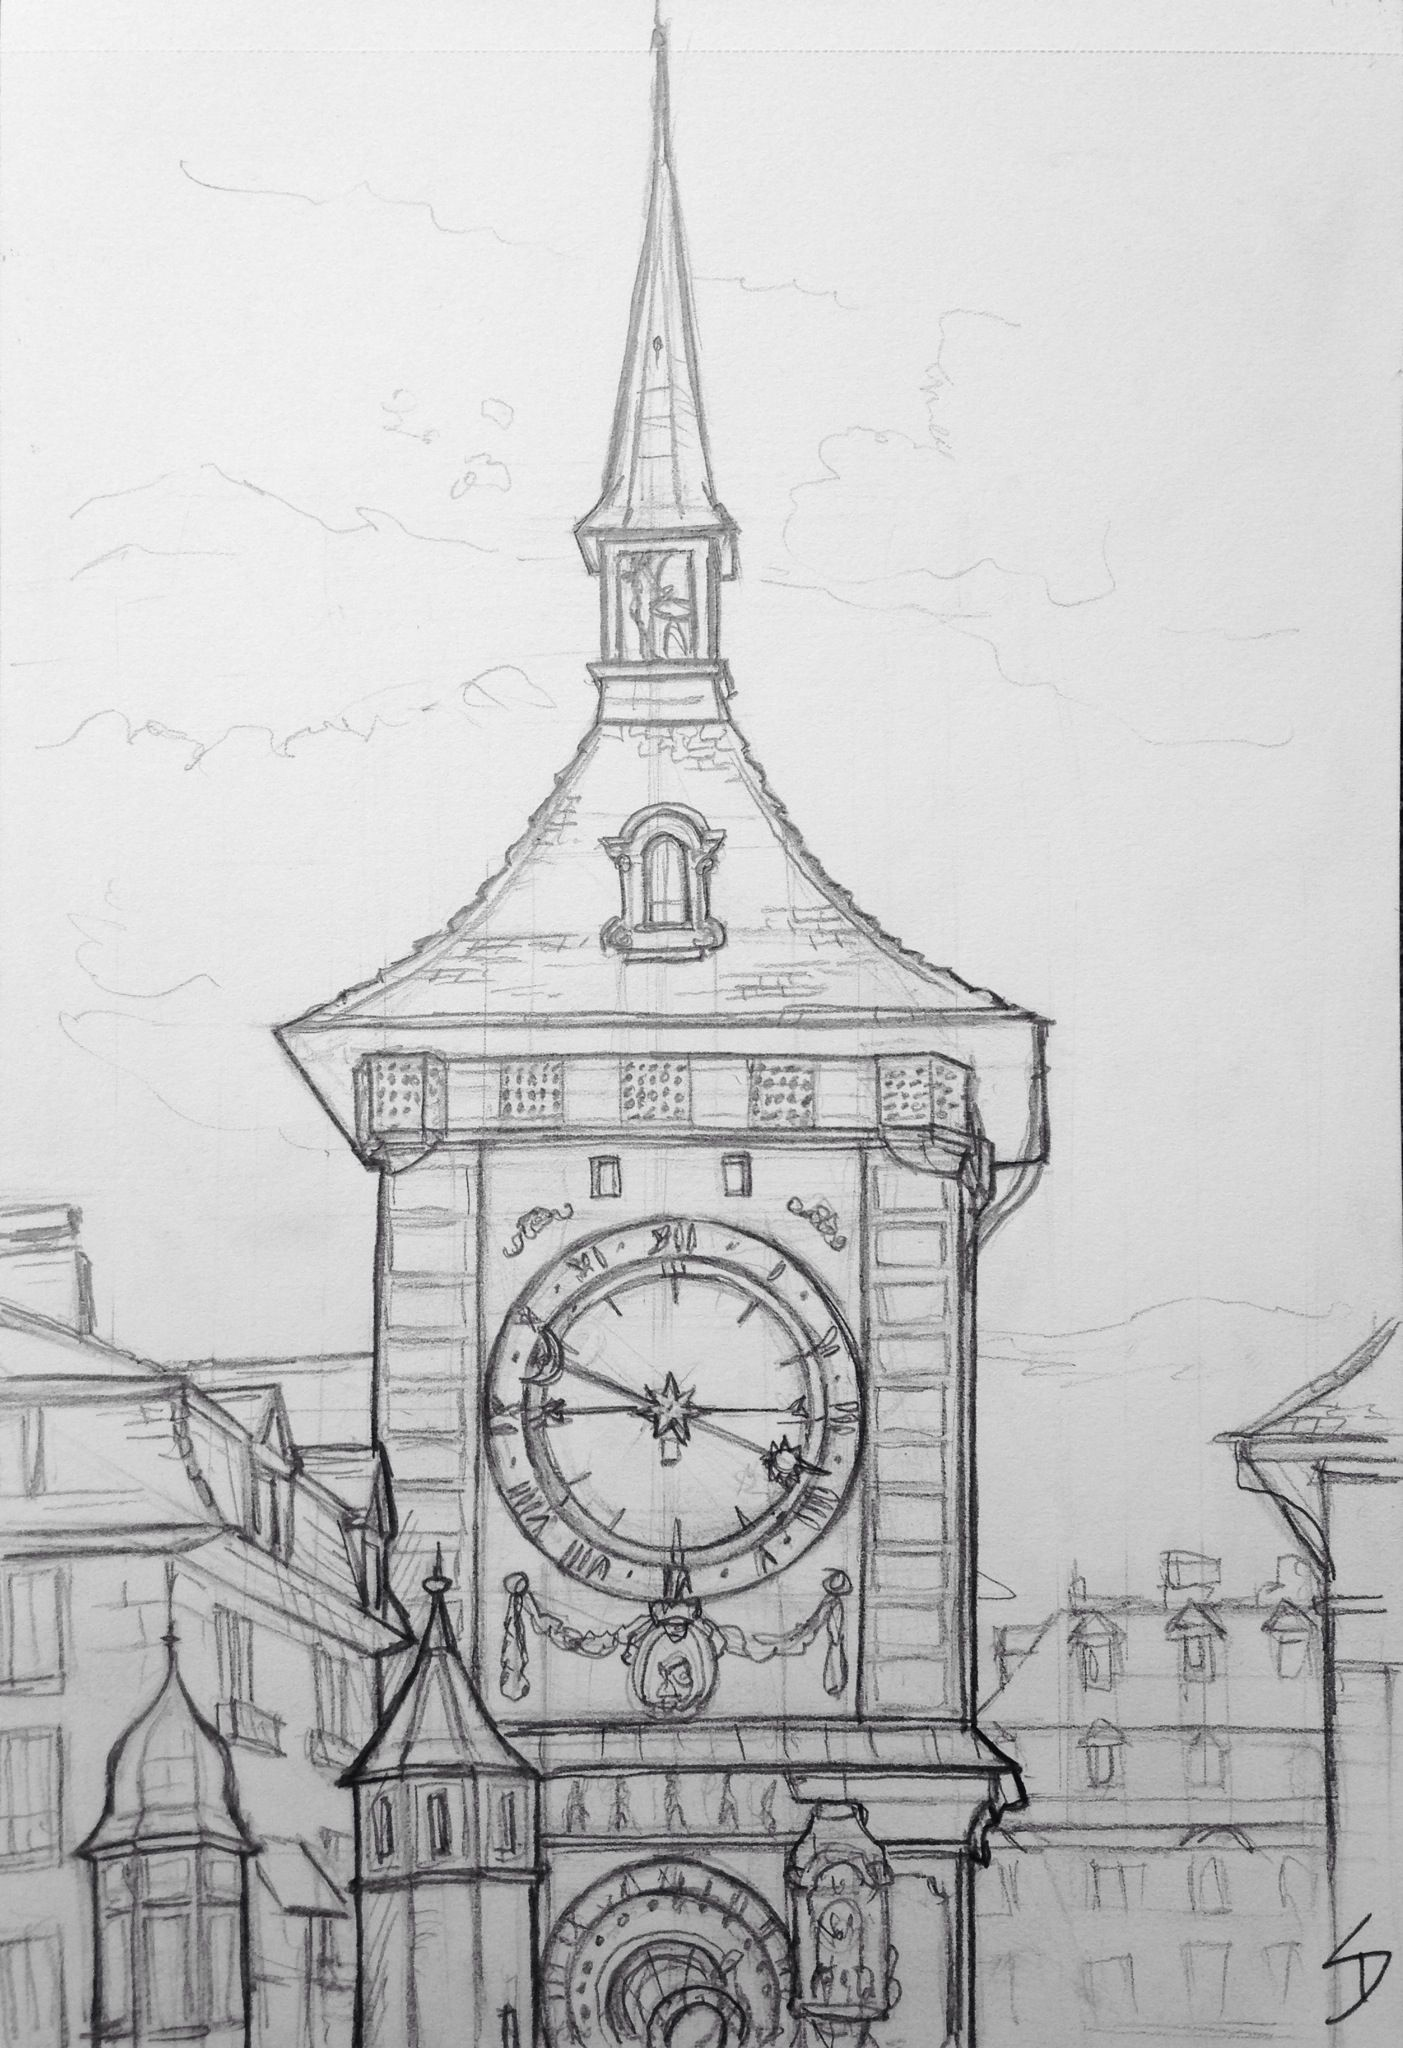 Pin By Will Ann Wllace On Misc Ideas Architecture Drawing Sketchbooks Cool Art Drawings Clock Drawings